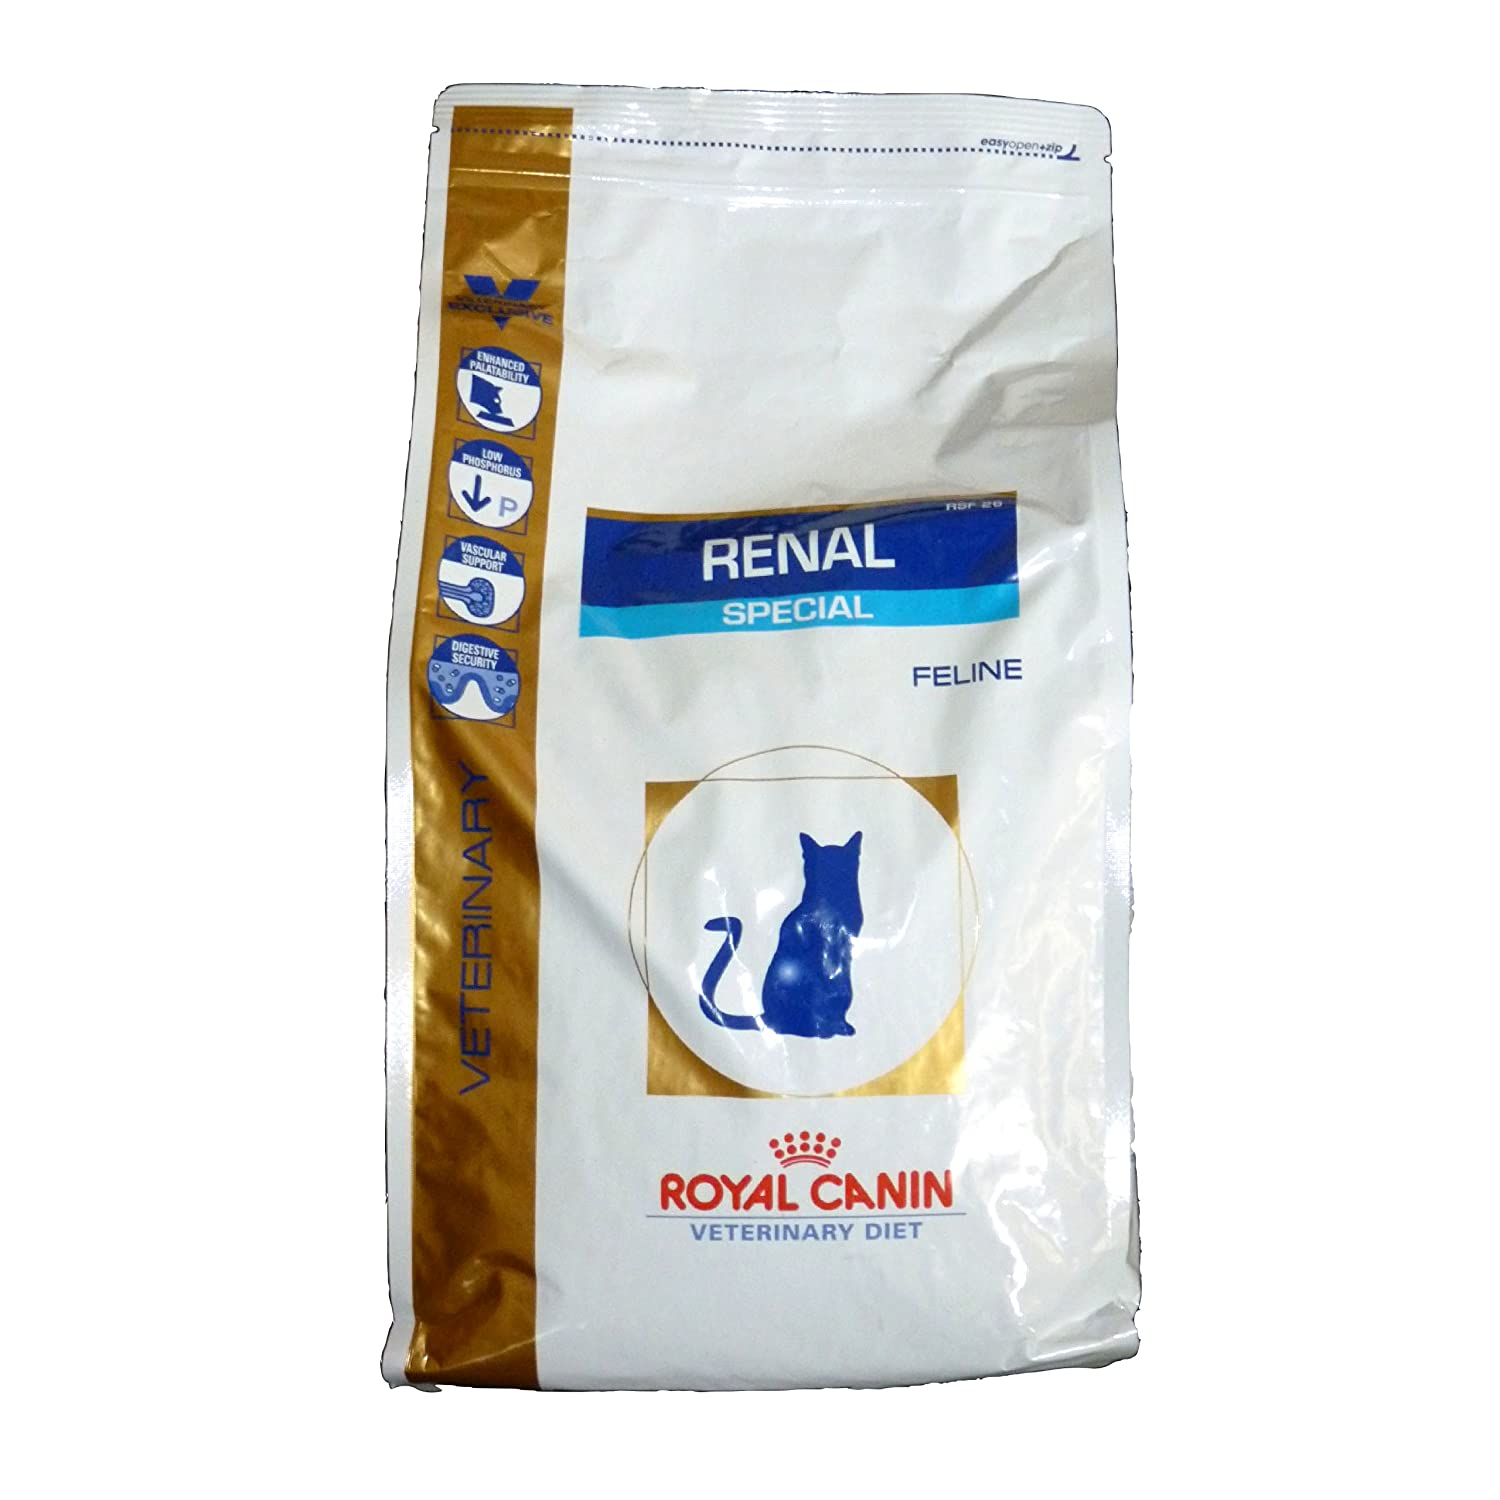 Royal Canin Veterinary Diet Cat Renal Special RSF26 Chat - Croquettes 4 kg 3182550748179